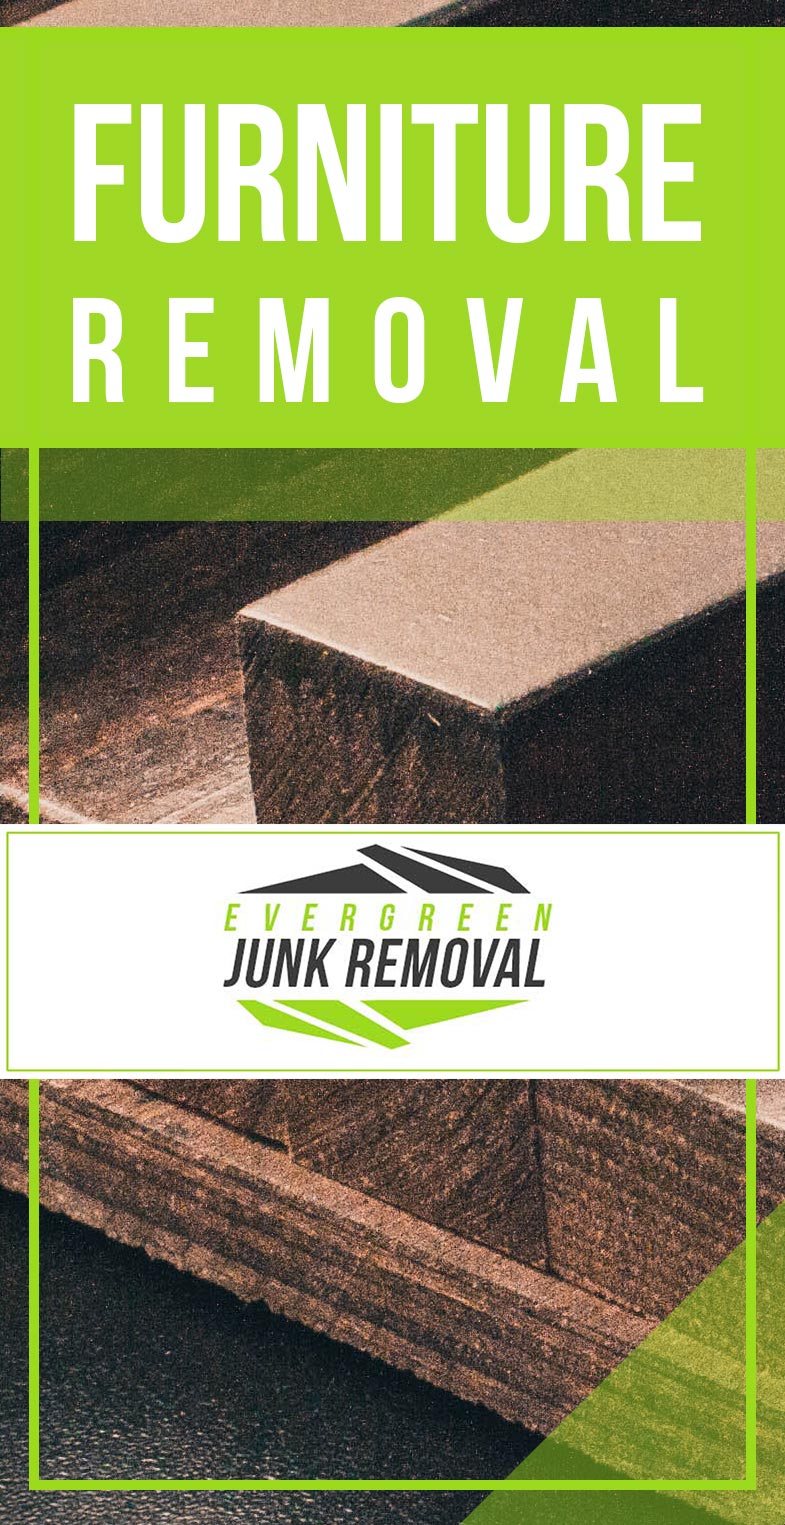 East Los Angeles Furniture Removal